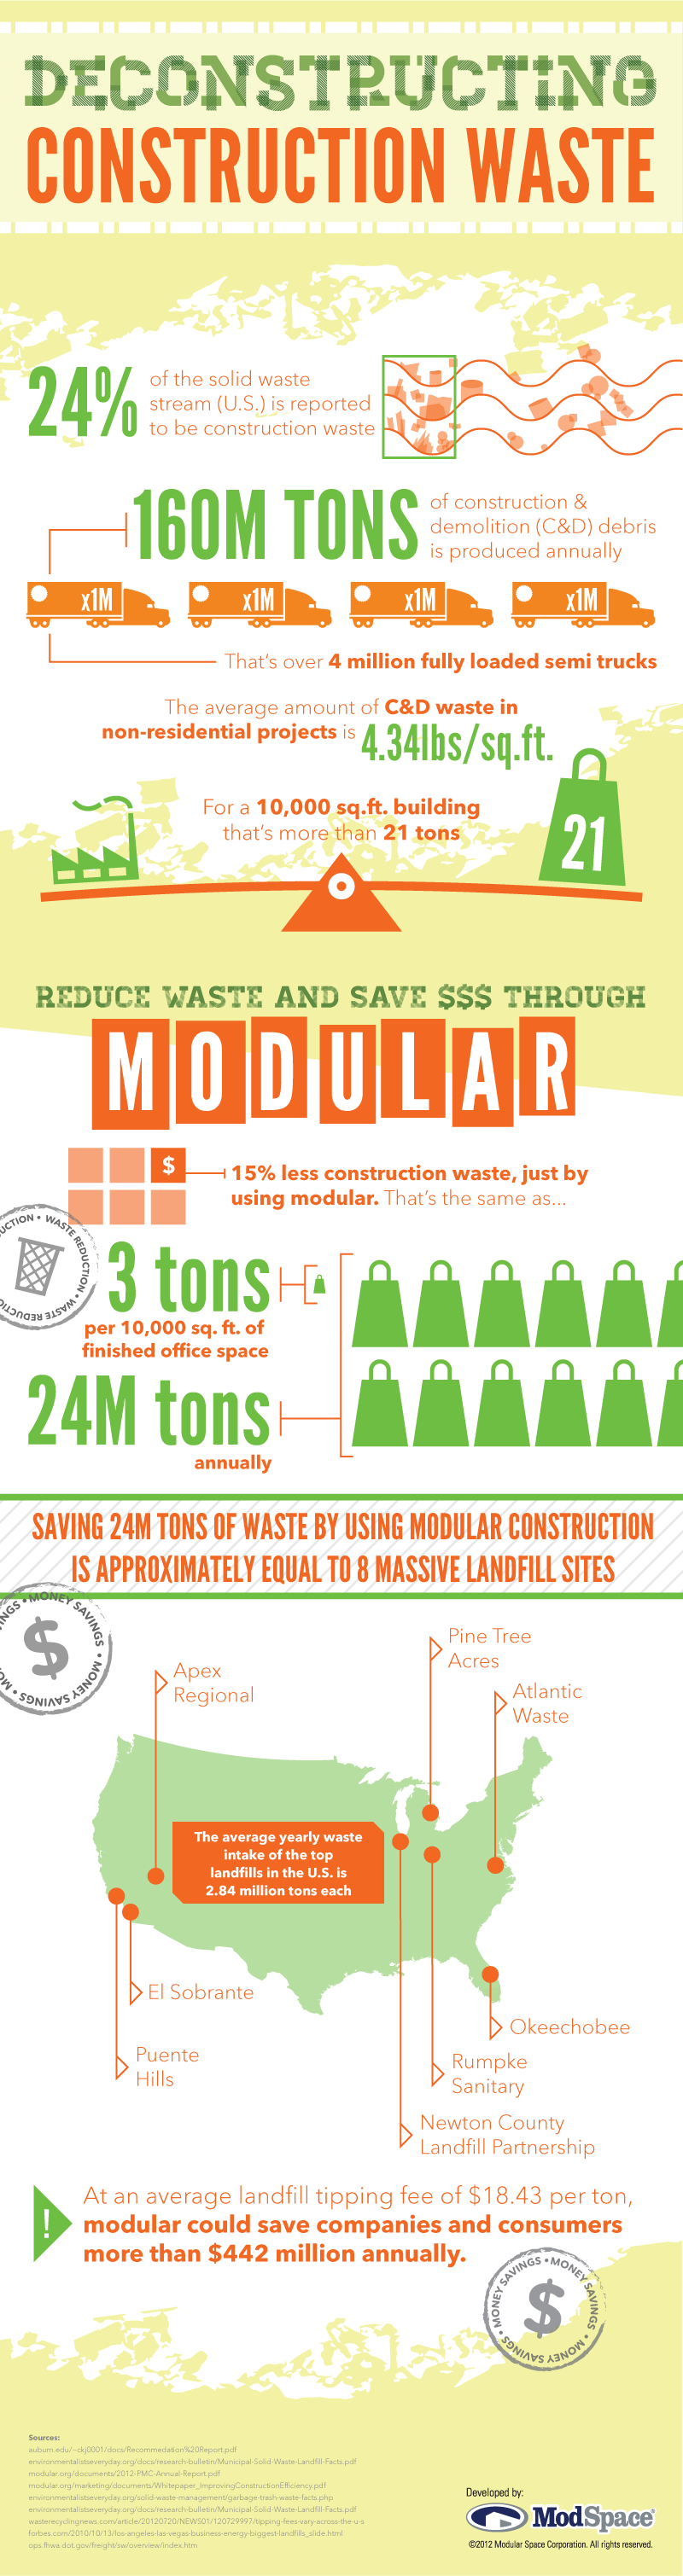 modspace deconstructwaste final 012413 Infographic: Deconstructing Construction Waste